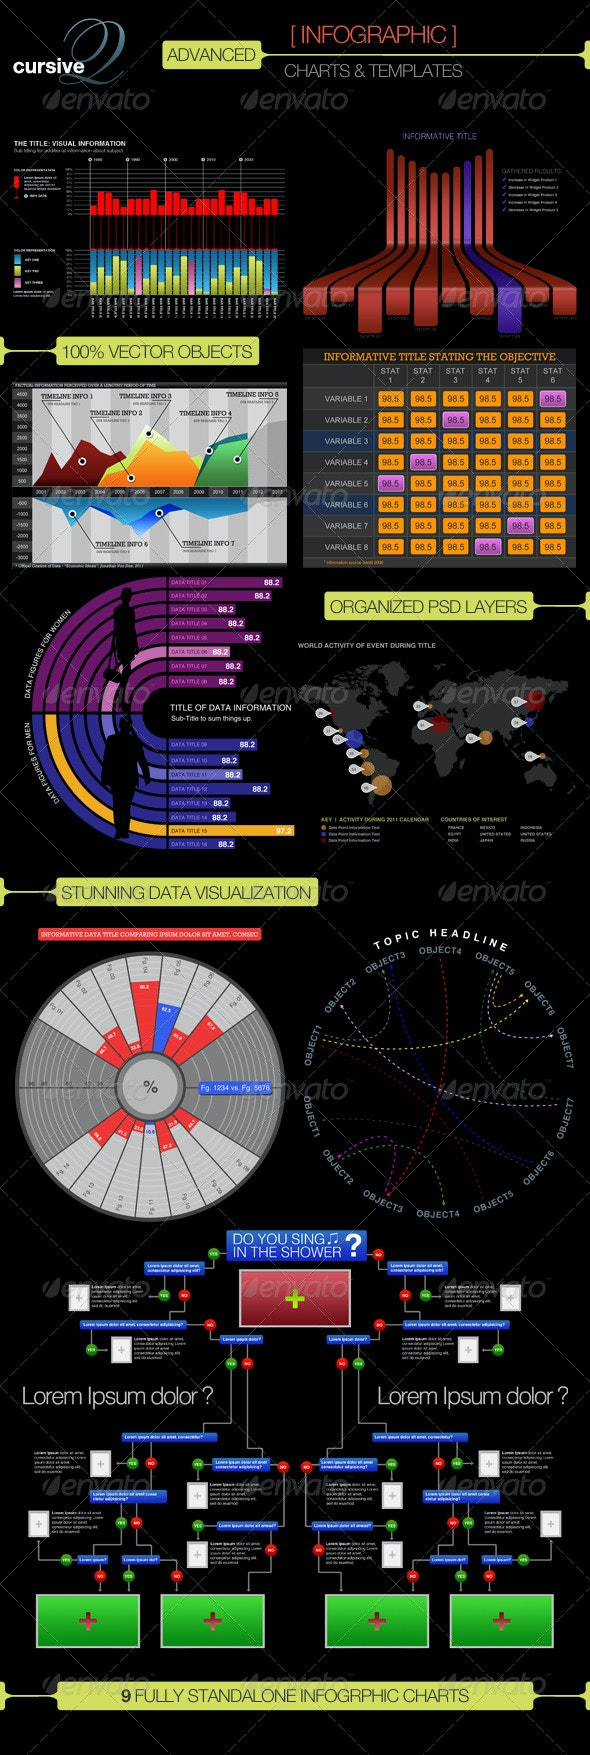 Advanced Infographic Charts and Templates - Infographics